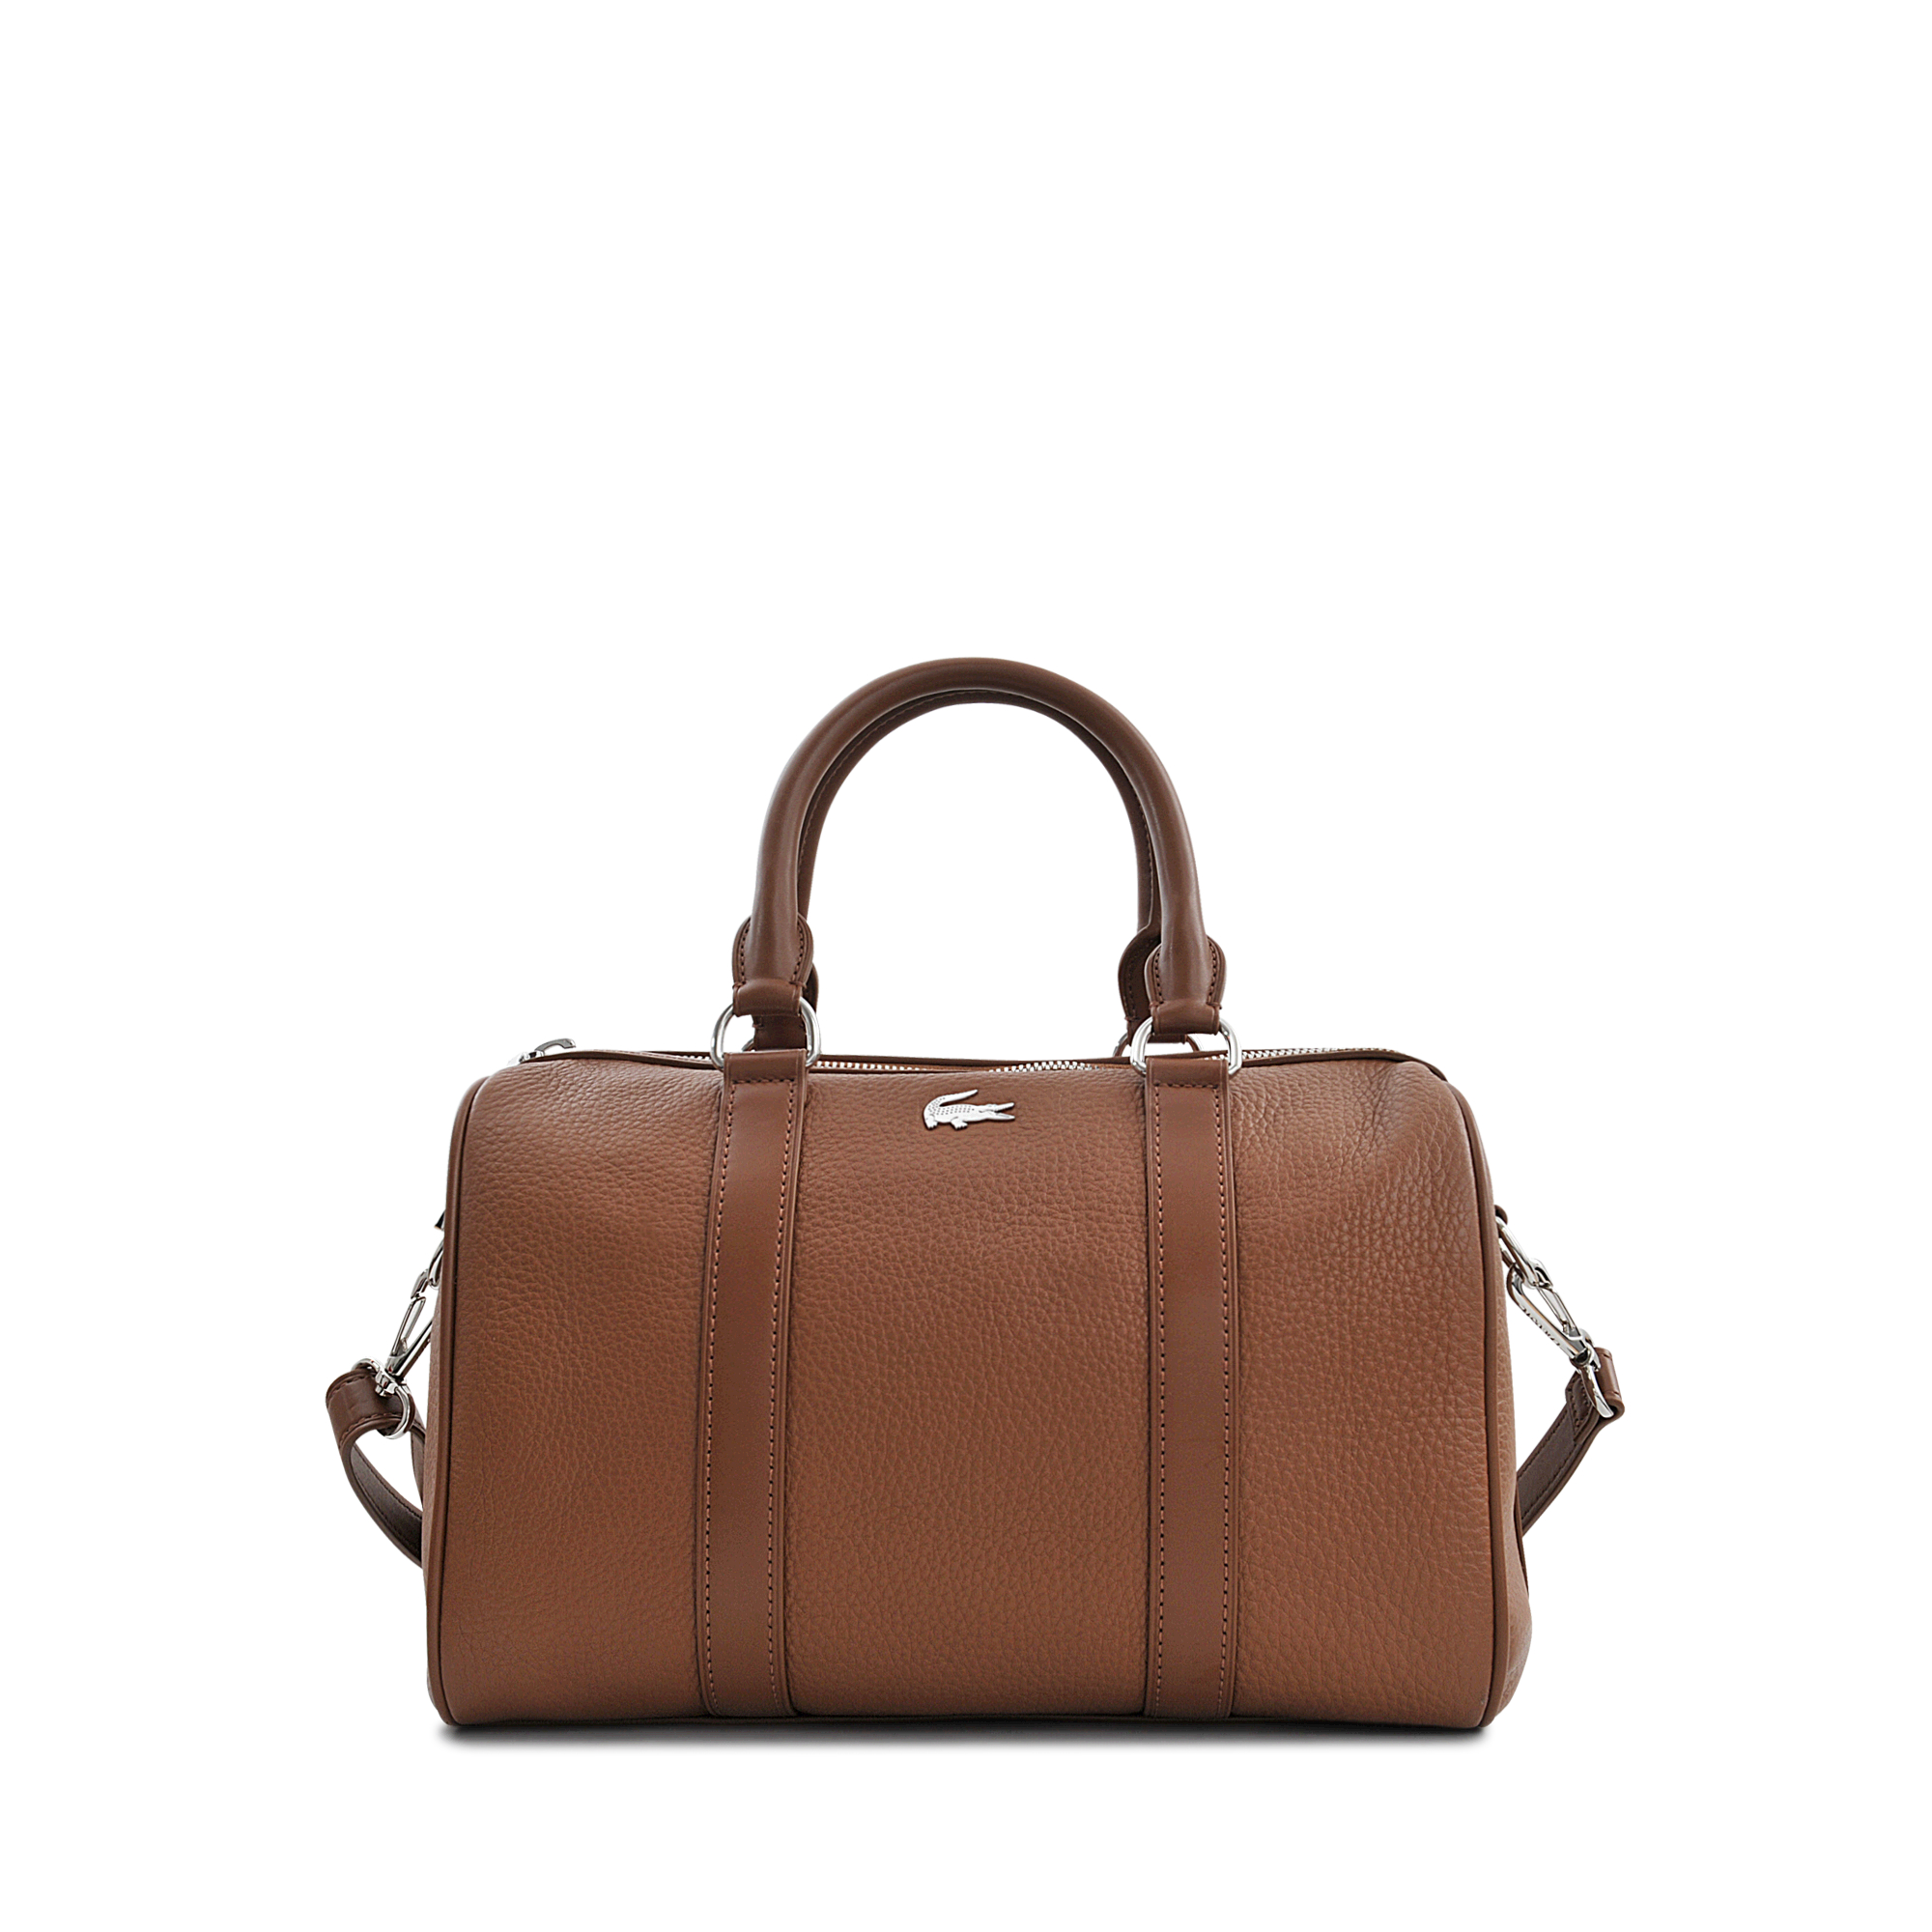 lacoste bags - photo #16